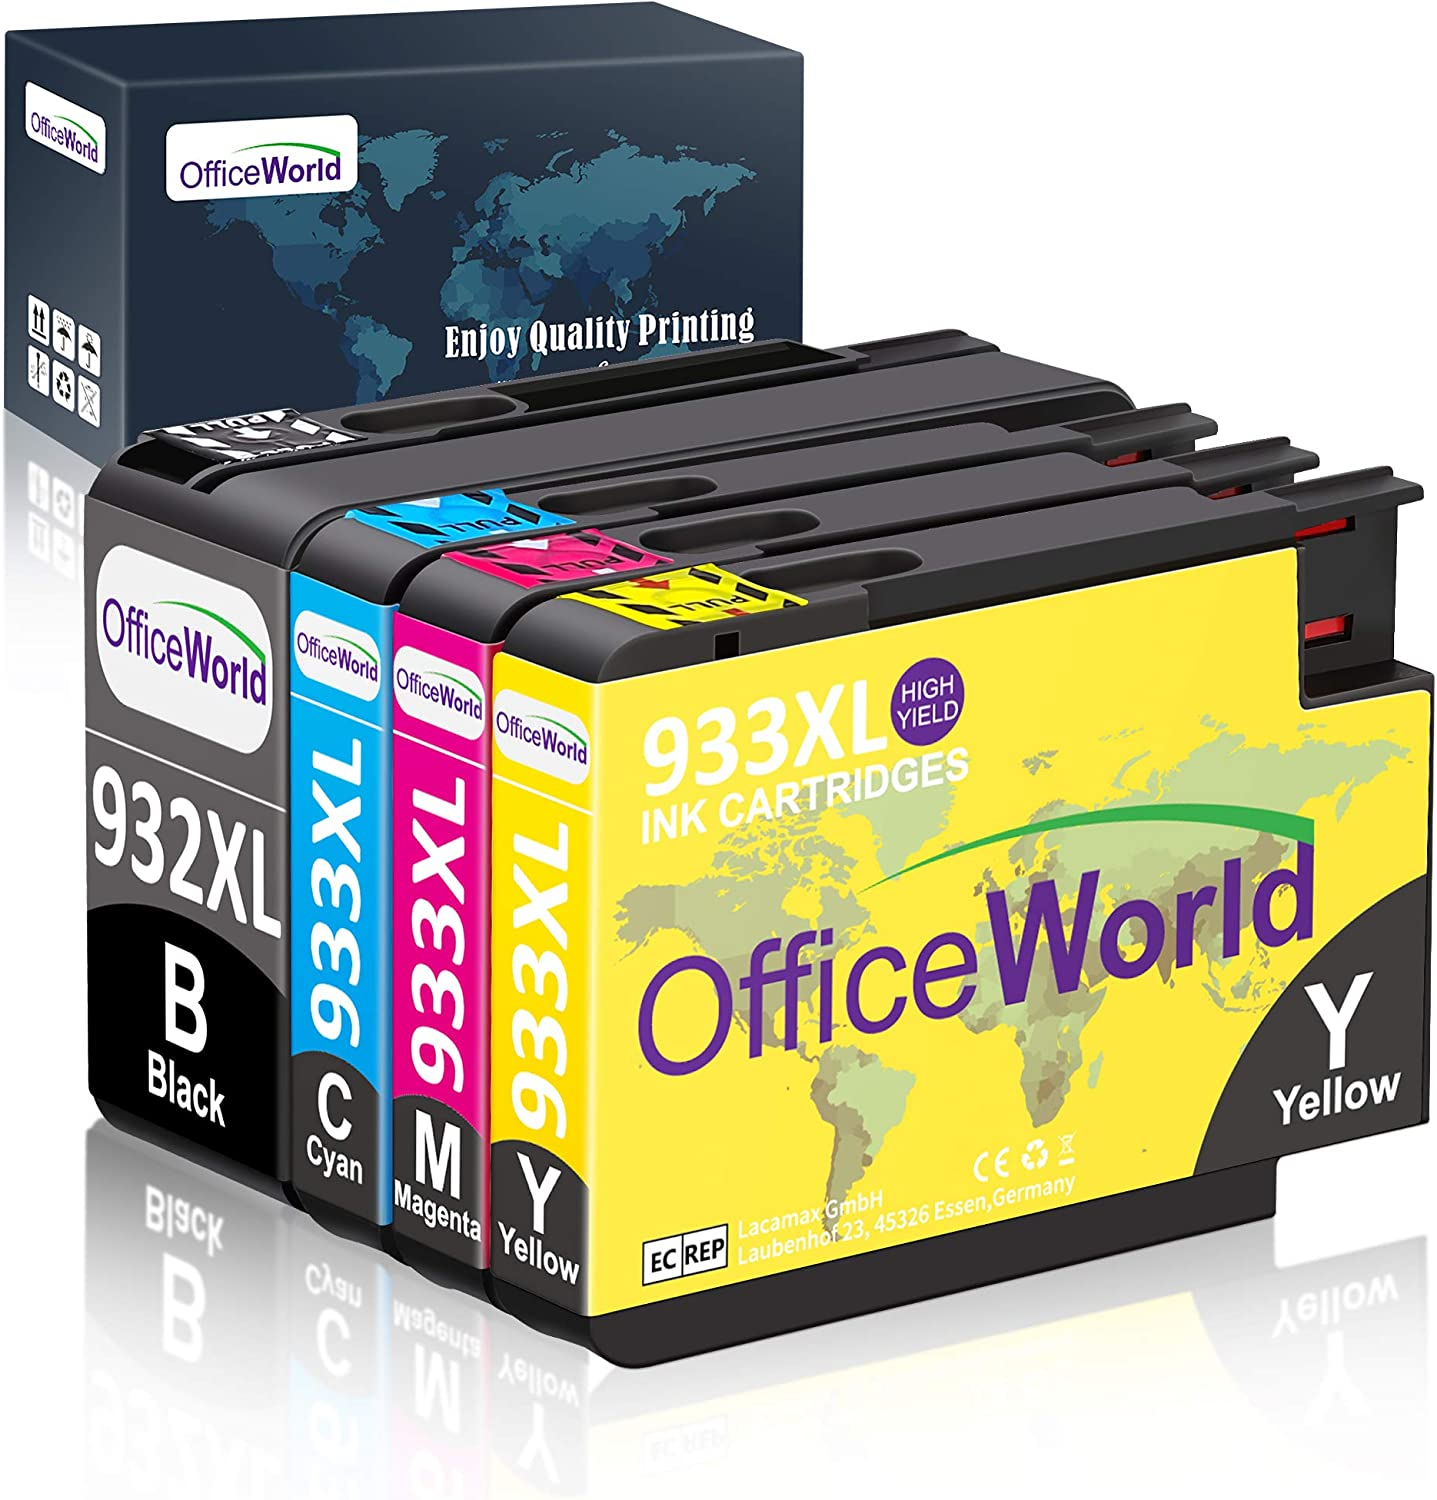 OfficeWorld Compatible Ink Cartridge Replacement for HP 932XL 933XL 932 933 Ink Cartridges (4 Packs), Work with HP Officejet 6700 6600 6100 7610 7110 7612 Printer